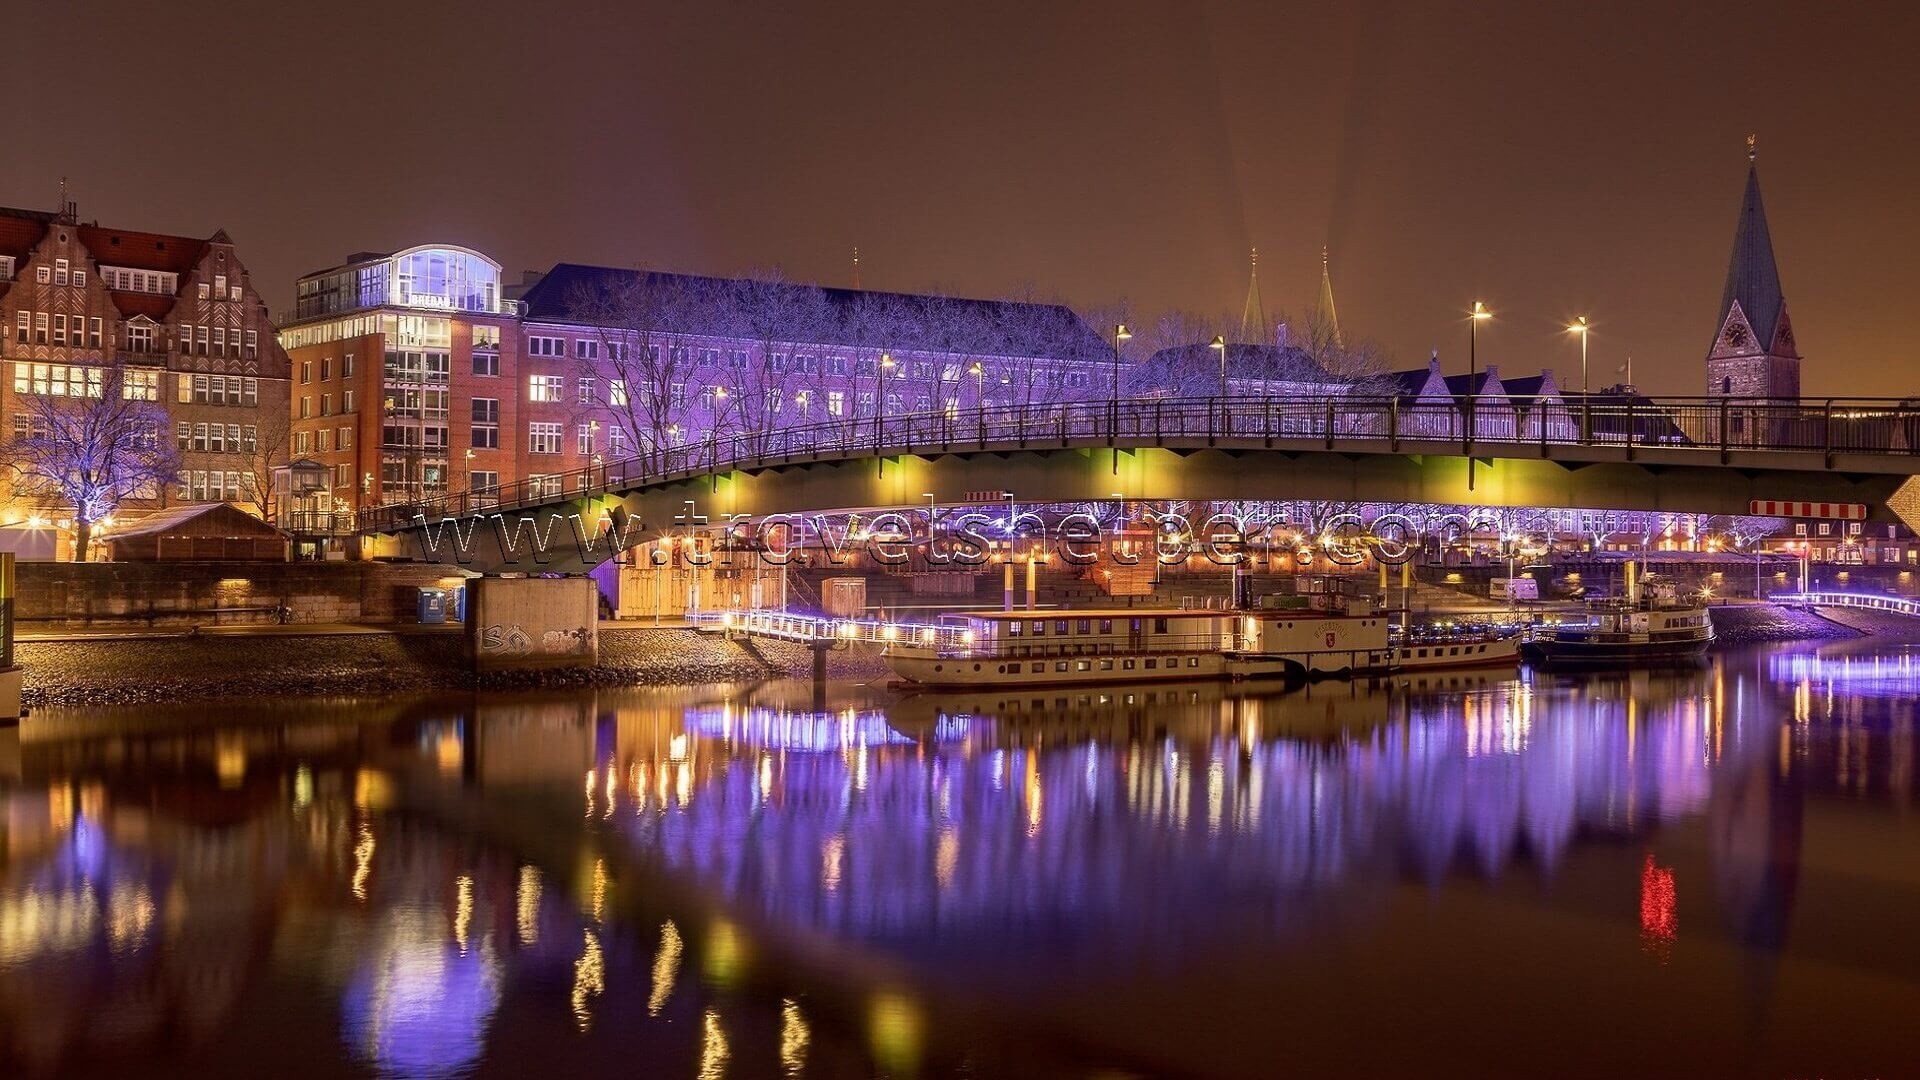 Bremen, Germany - 10 WONDERFUL CITIES IN EUROPE THAT TOURISTS OVERLOOK